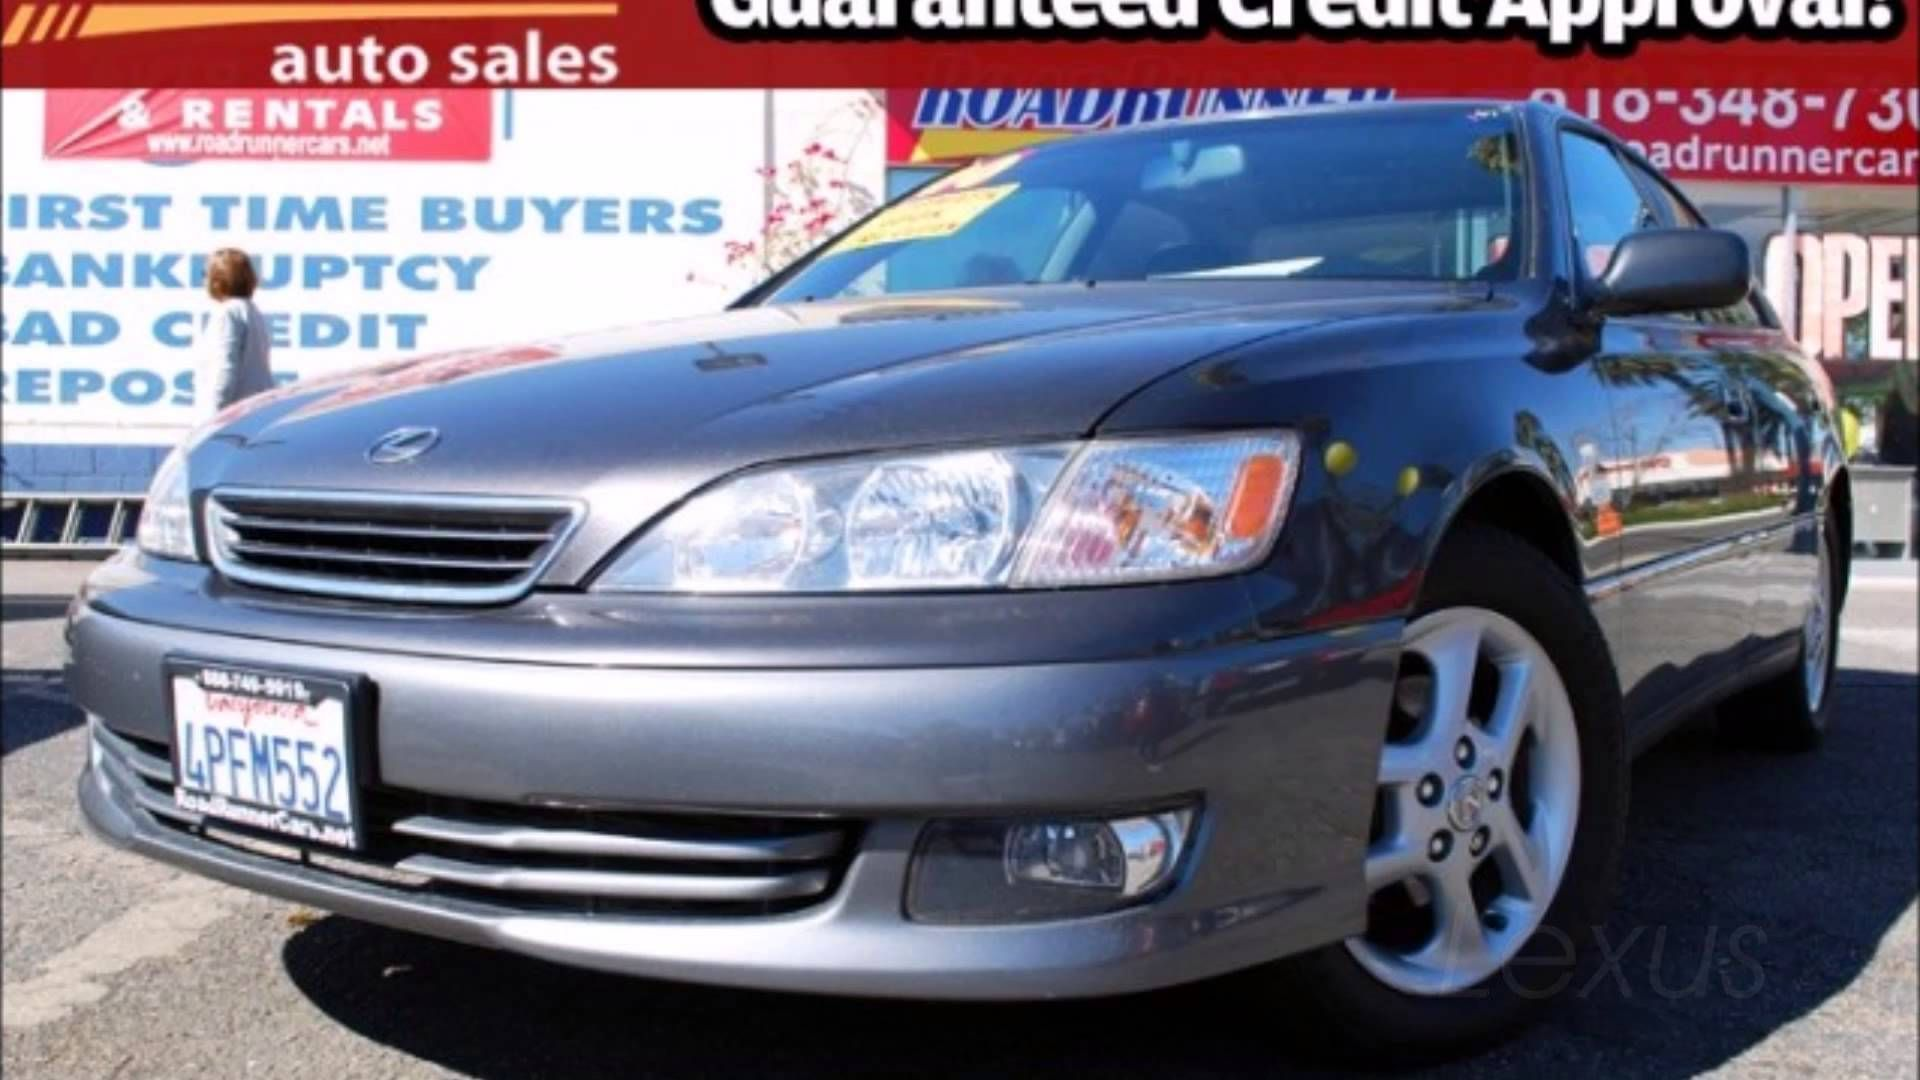 Road Runner Auto Sales >> Used Cars Van Nuys Roadrunner Auto Sales Near Reseda Car